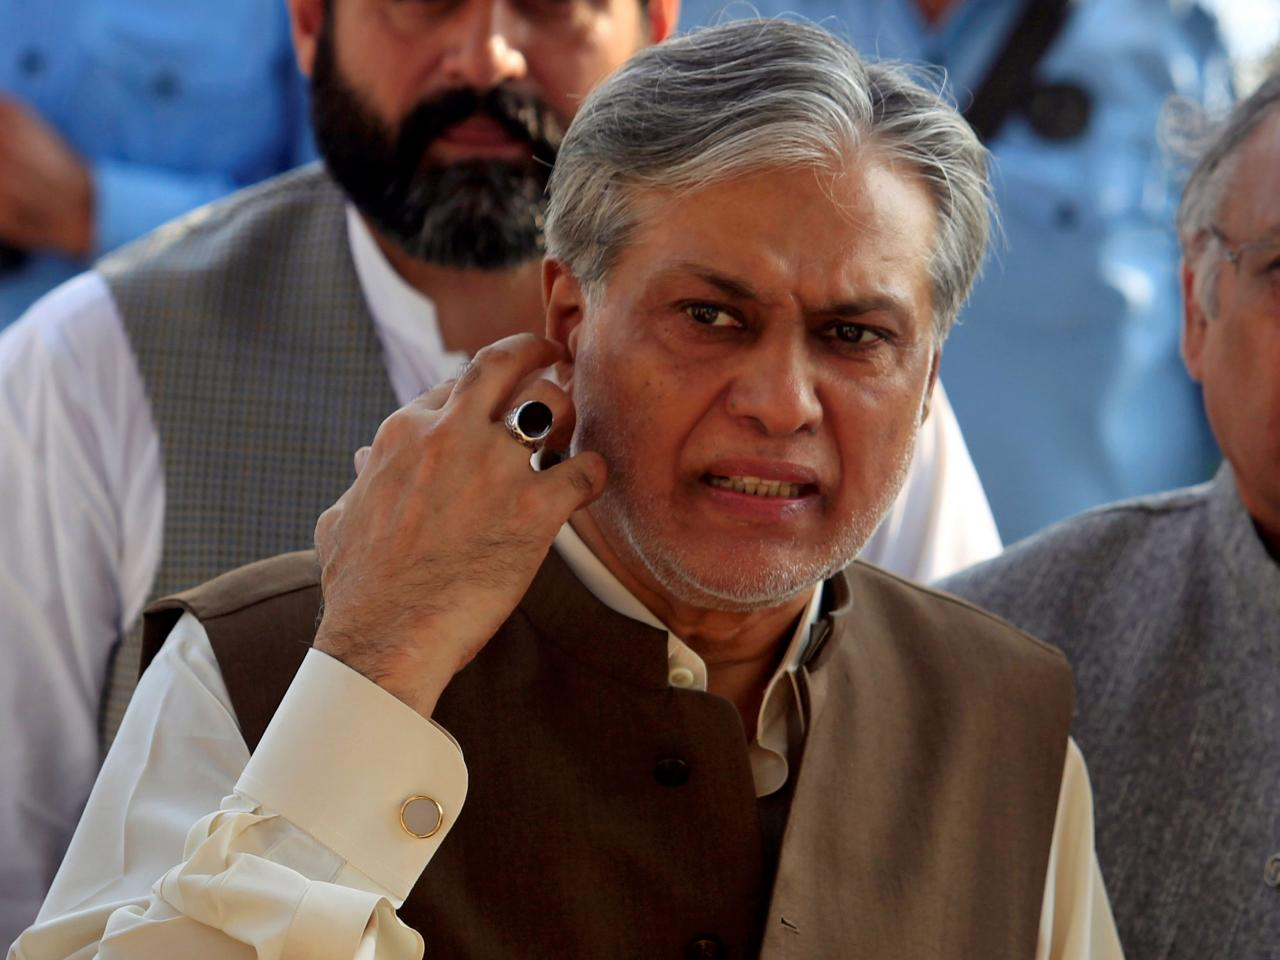 Finance Minister has not quit: Pak